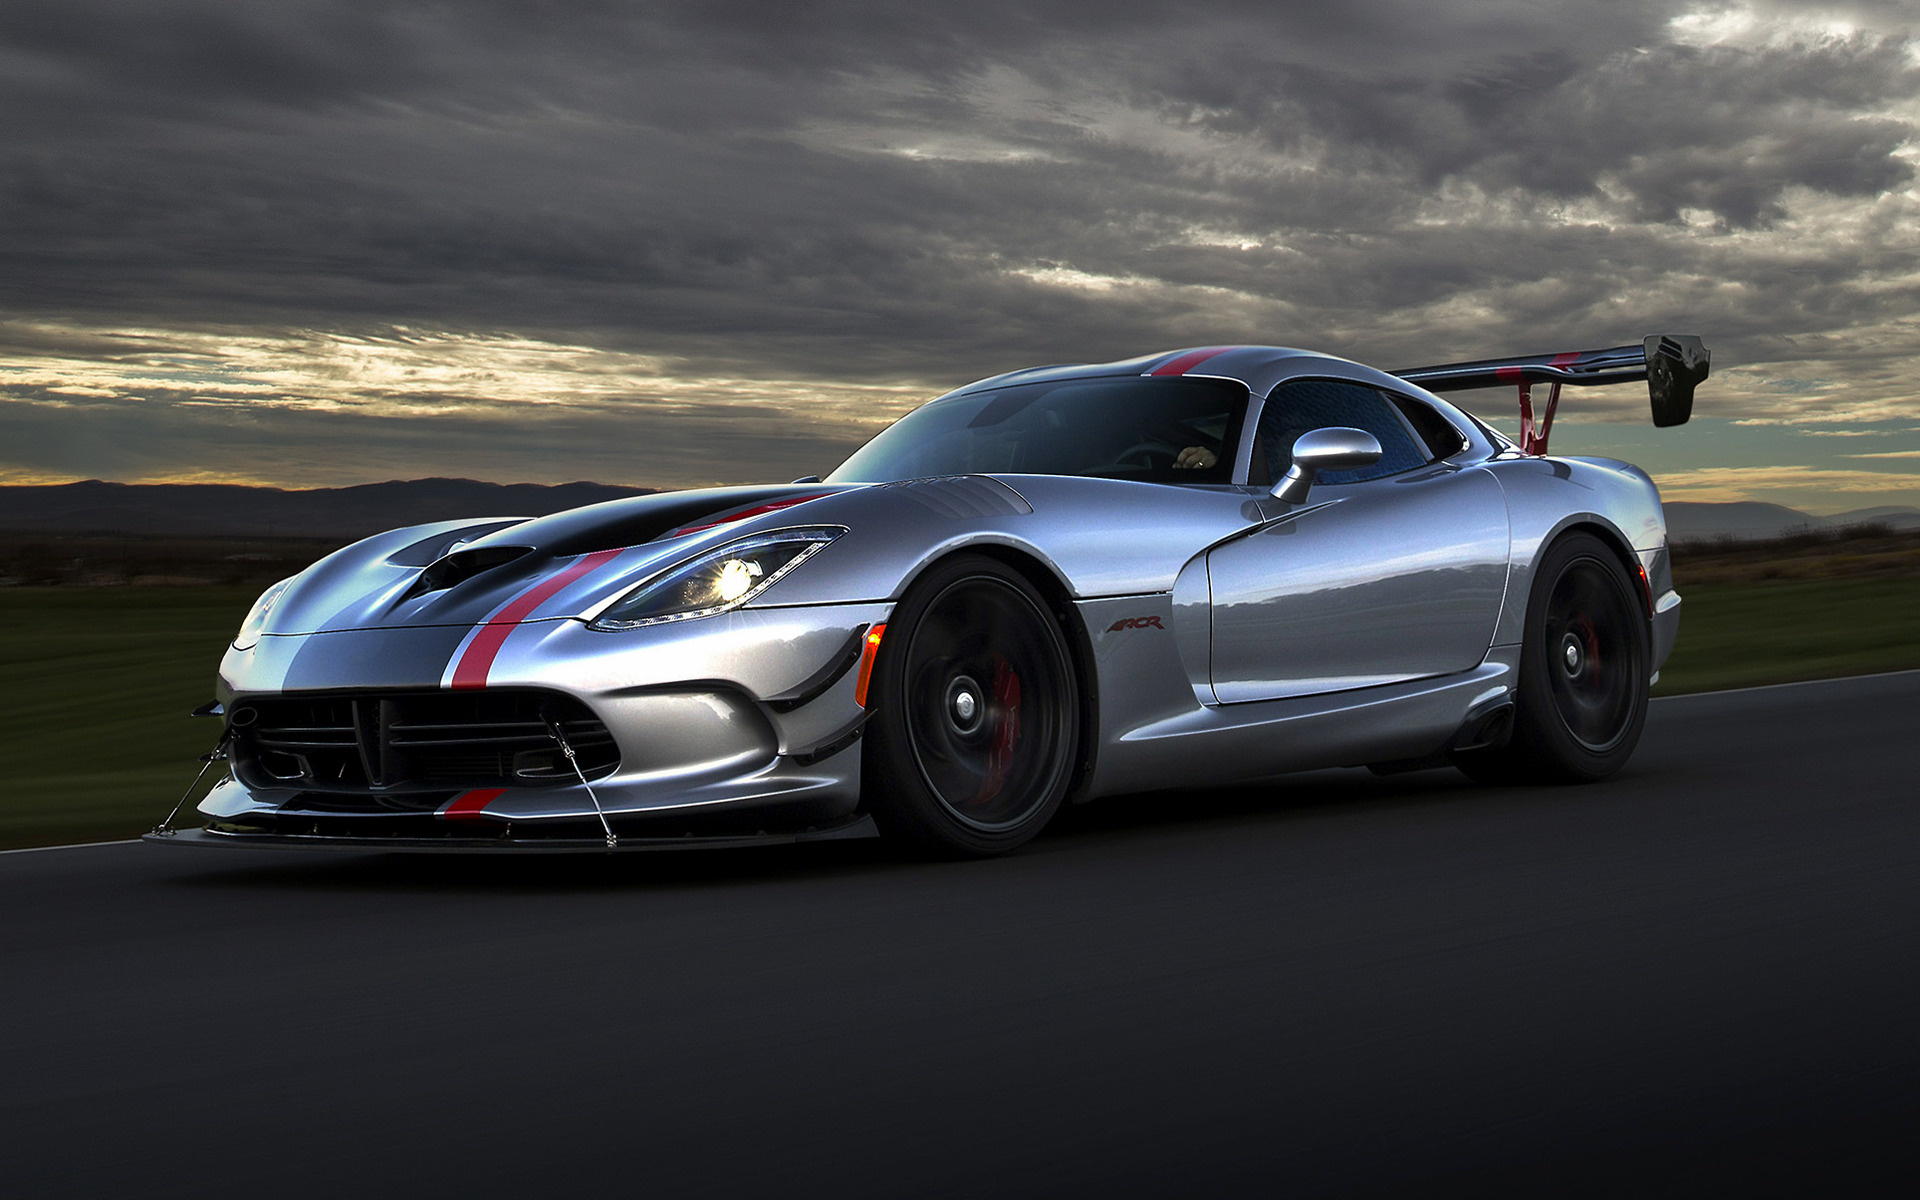 2016 Dodge Viper ACR   Wallpapers and HD Images Car Pixel 1920x1200